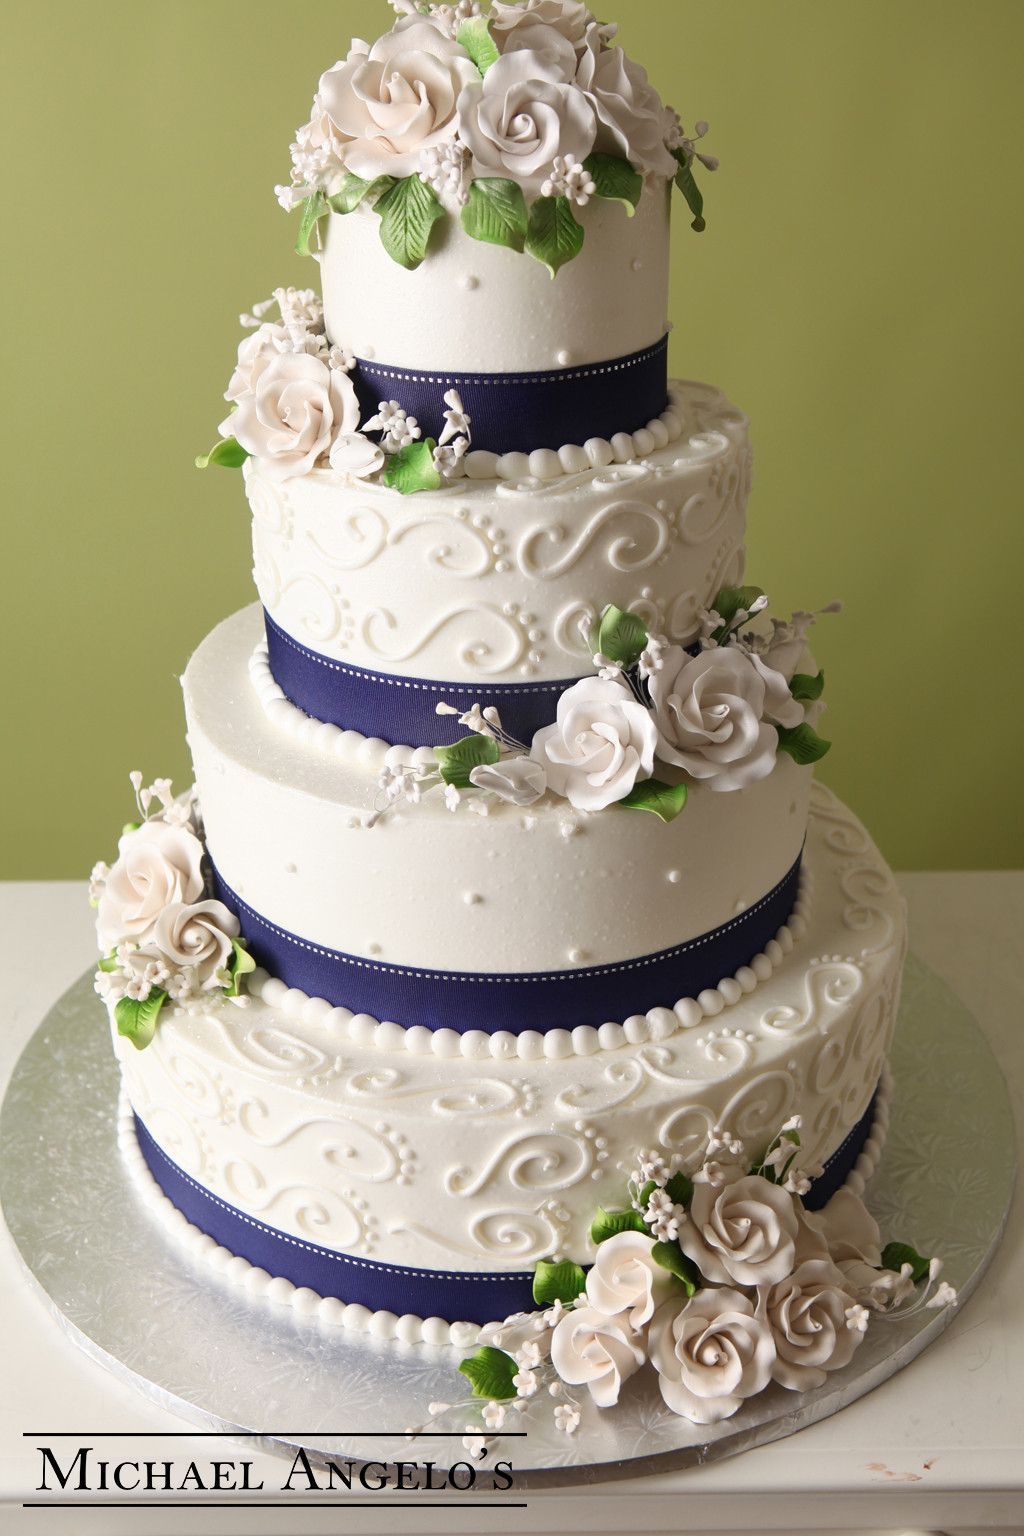 Simple Royal Roses 23Ribbons This Four Tier Buttercream Is Wrapped With A Blue Satin Ribbon White Stitching The Cake Simply Decorated